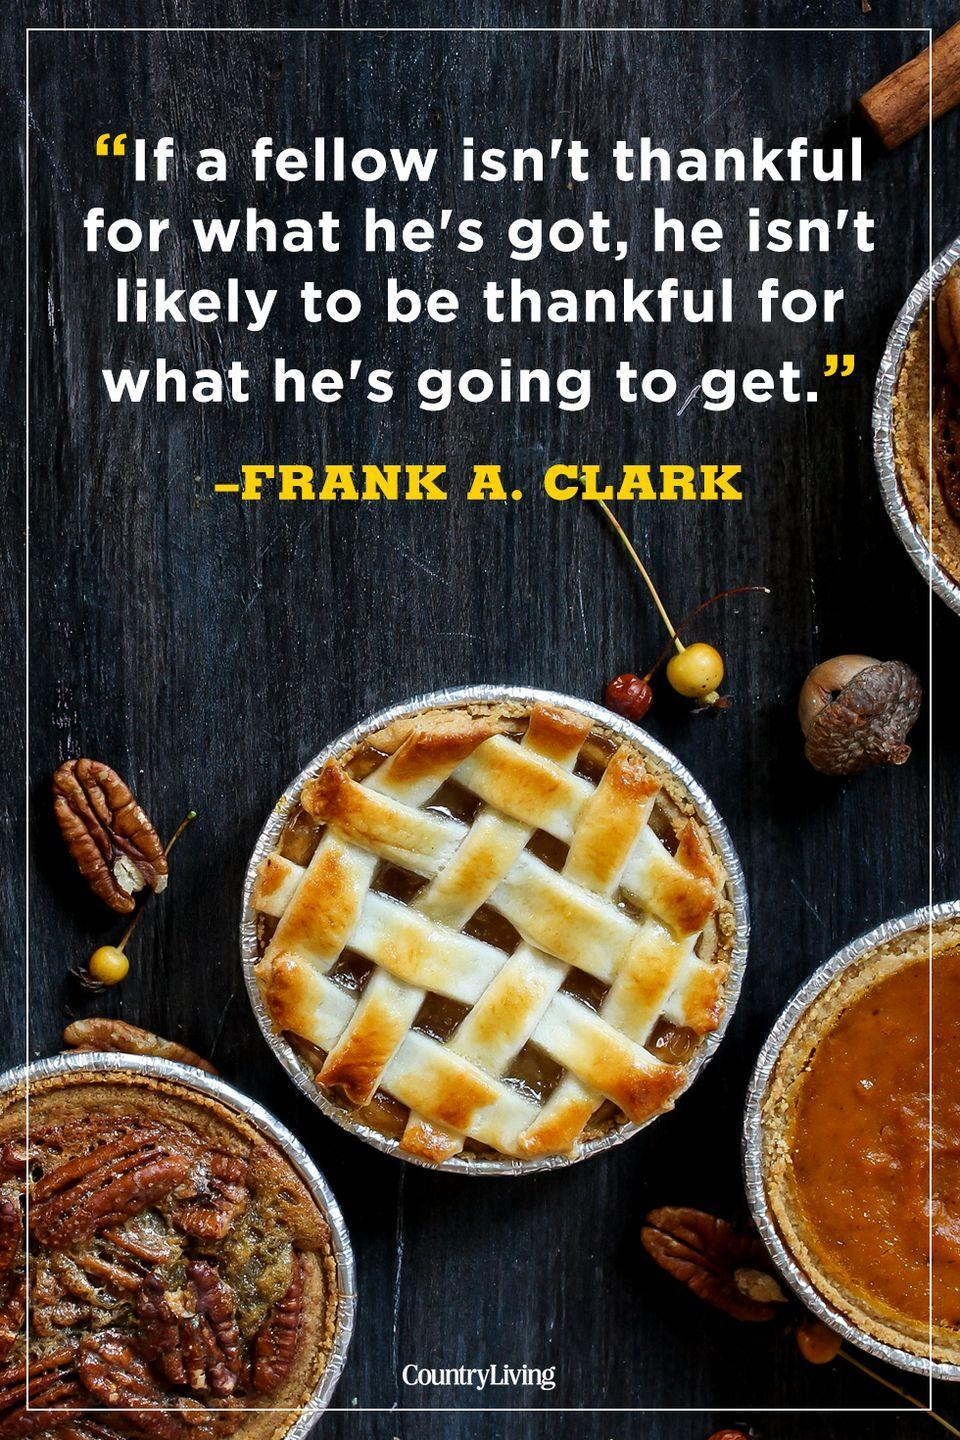 """<p>""""If a fellow isn't thankful for what he's got, he isn't likely to be thankful for what he's going to get.""""</p><p><strong>RELATED:</strong> <a href=""""https://www.countryliving.com/food-drinks/g1368/thanksgiving-pies/"""" rel=""""nofollow noopener"""" target=""""_blank"""" data-ylk=""""slk:The Best Thanksgiving Pie Recipes of All Time"""" class=""""link rapid-noclick-resp"""">The Best Thanksgiving Pie Recipes of All Time</a><br></p>"""